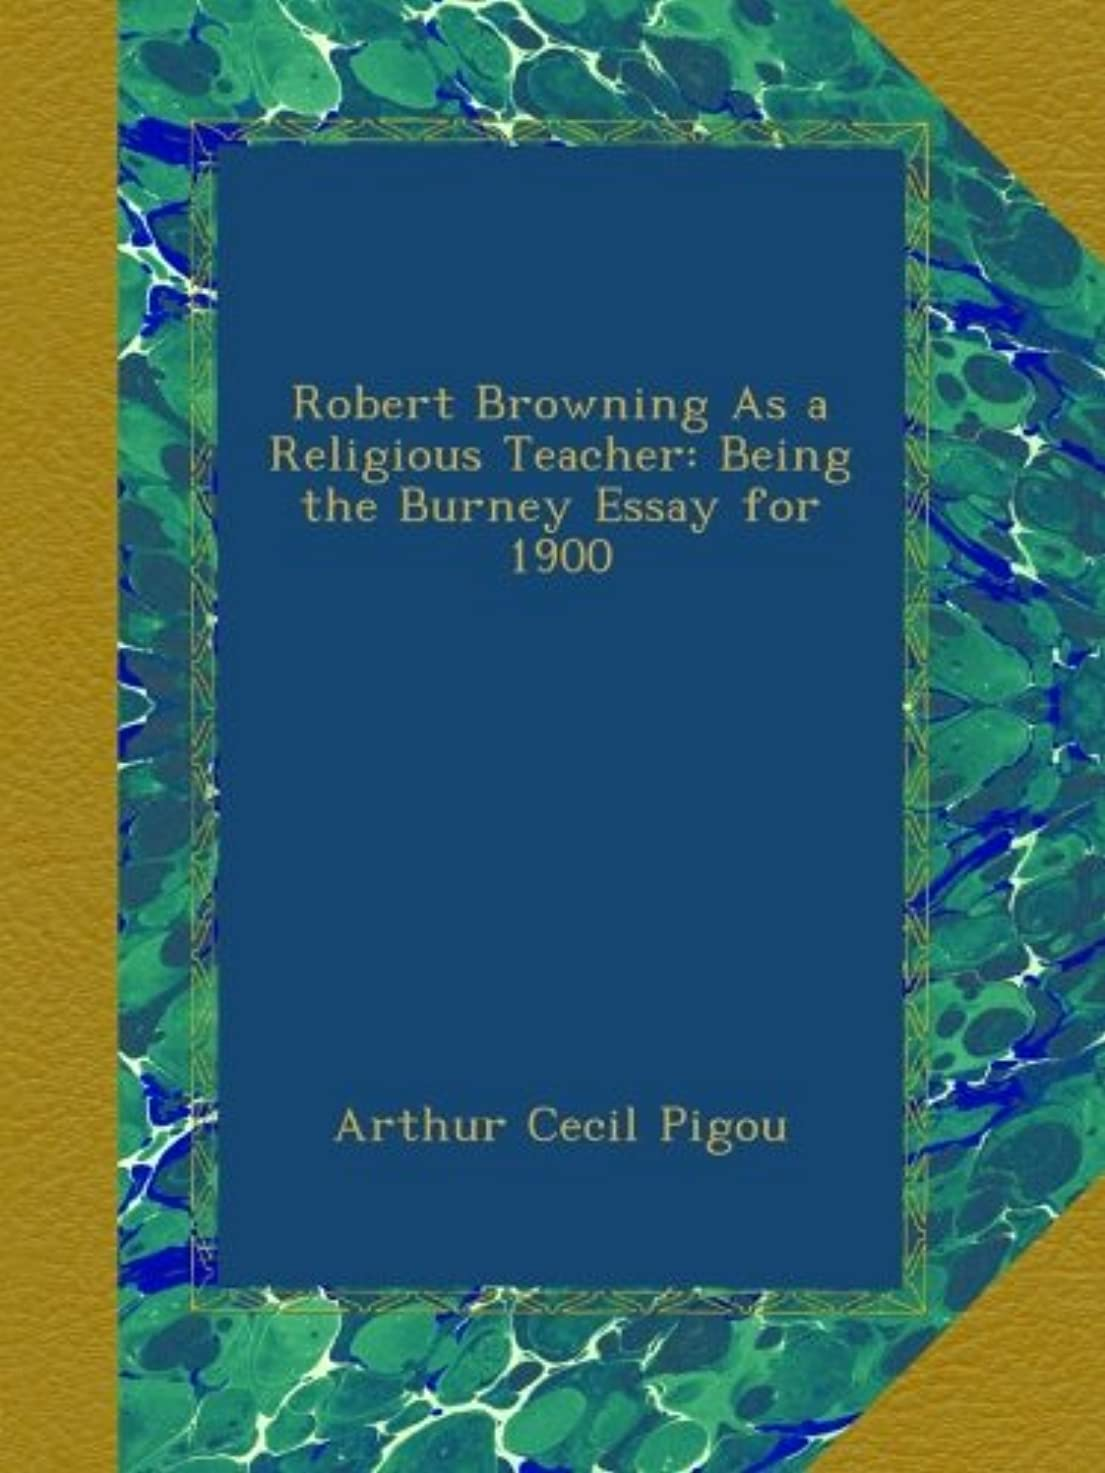 Robert Browning As a Religious Teacher: Being the Burney Essay for 1900